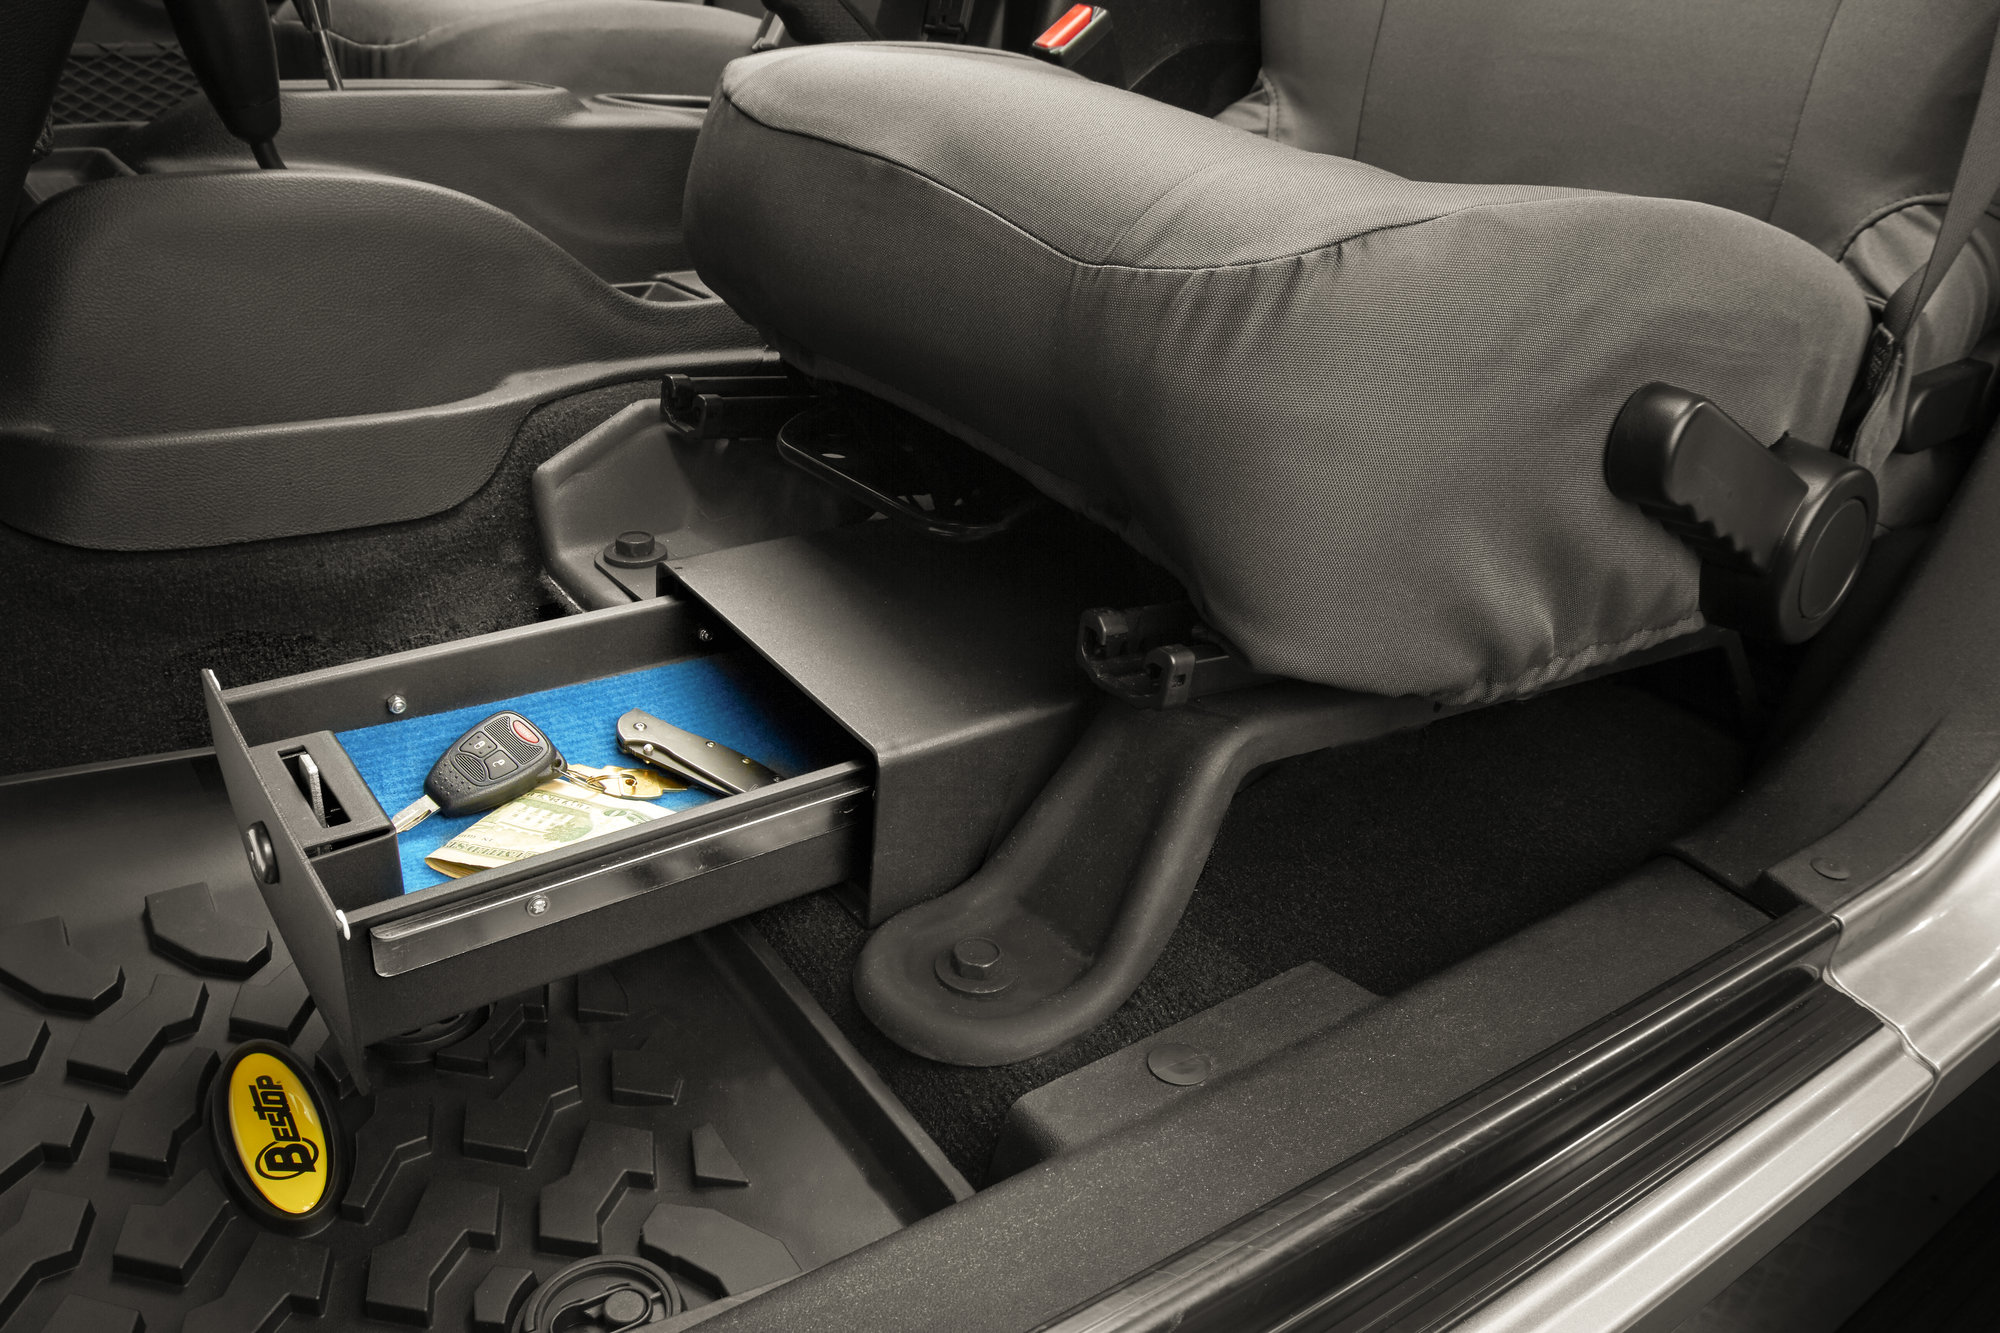 Seating With Storage Underneath Bestop 42640 01 Locking Under Seat Storage Box In Textured Black For 07 10 Jeep Wrangler 07 18 Wrangler Unlimited Jk Driver Side